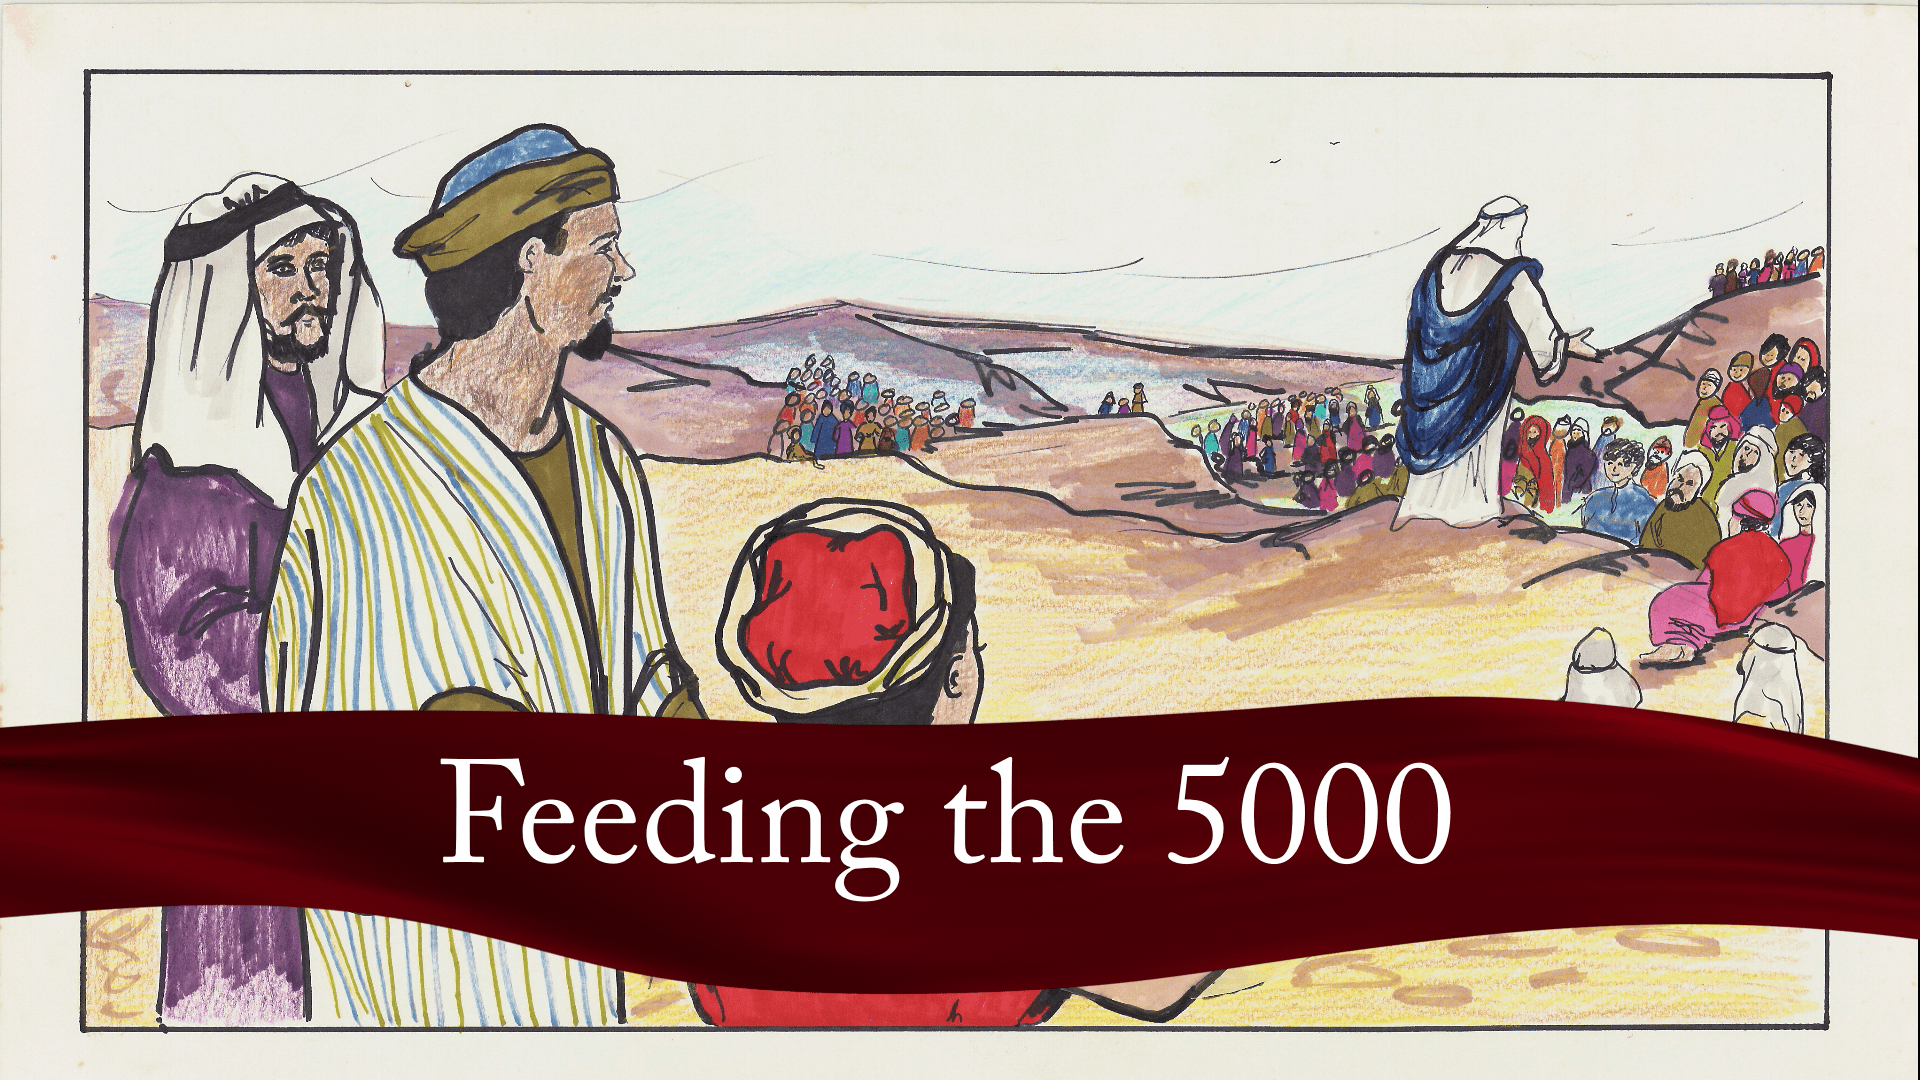 The Storyteller - Feeding the 5000